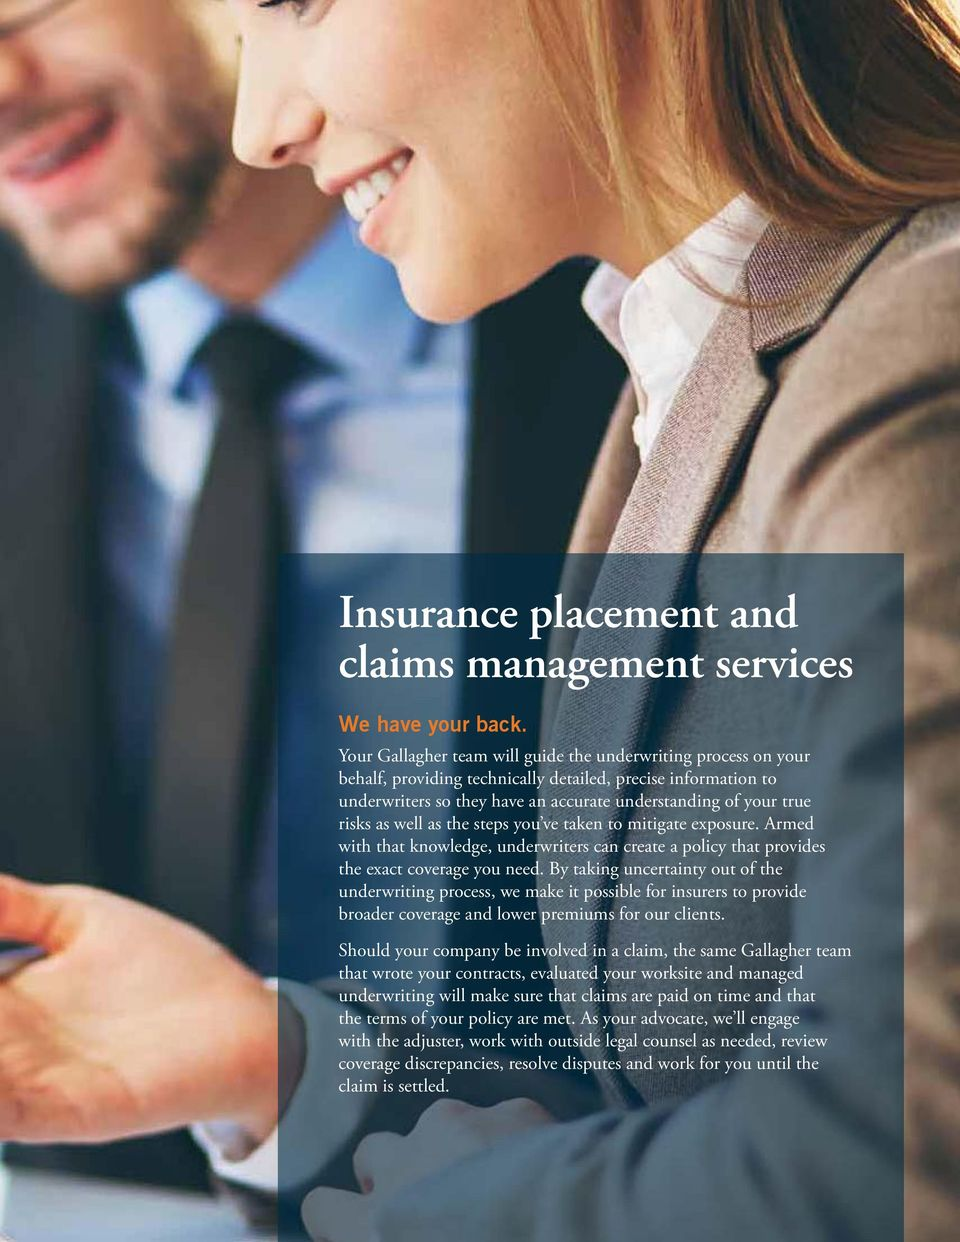 as well as the steps you ve taken to mitigate exposure. Armed with that knowledge, underwriters can create a policy that provides the exact coverage you need.